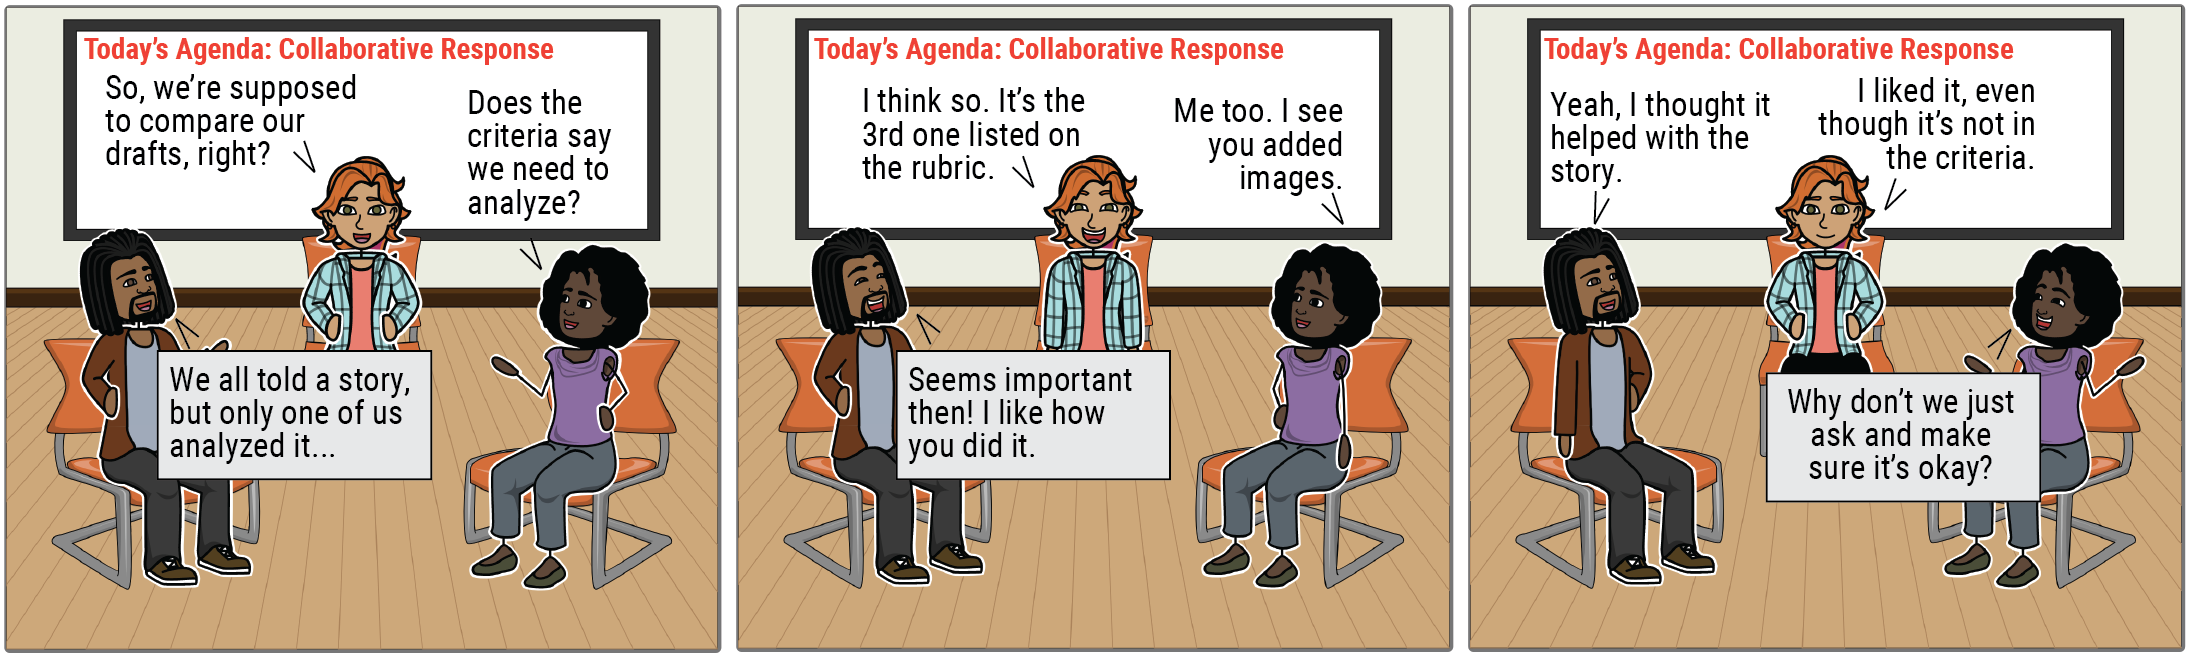 """A comic strip shows three students in collaborative response. Student 1: """"So, we're supposed to compare our drafts, right?"""" Student 2: """"We all told a story, but only one of us analyzed it."""" Student 3: """"Does the criteria say we need to analyze?"""" Student 1: """"I think so. It's the third one listed on the rubric."""" Student 2: """"Seems important then. I like you you did it."""" Student 3: """"Me too. I see you added images."""" Student 2: """"Yeah, I thought it helped with the story."""" Student 1: """"I liked it, even though it's not on the criteria."""" Student 3: """"Why don't we just ask and make sure it's okay?"""""""